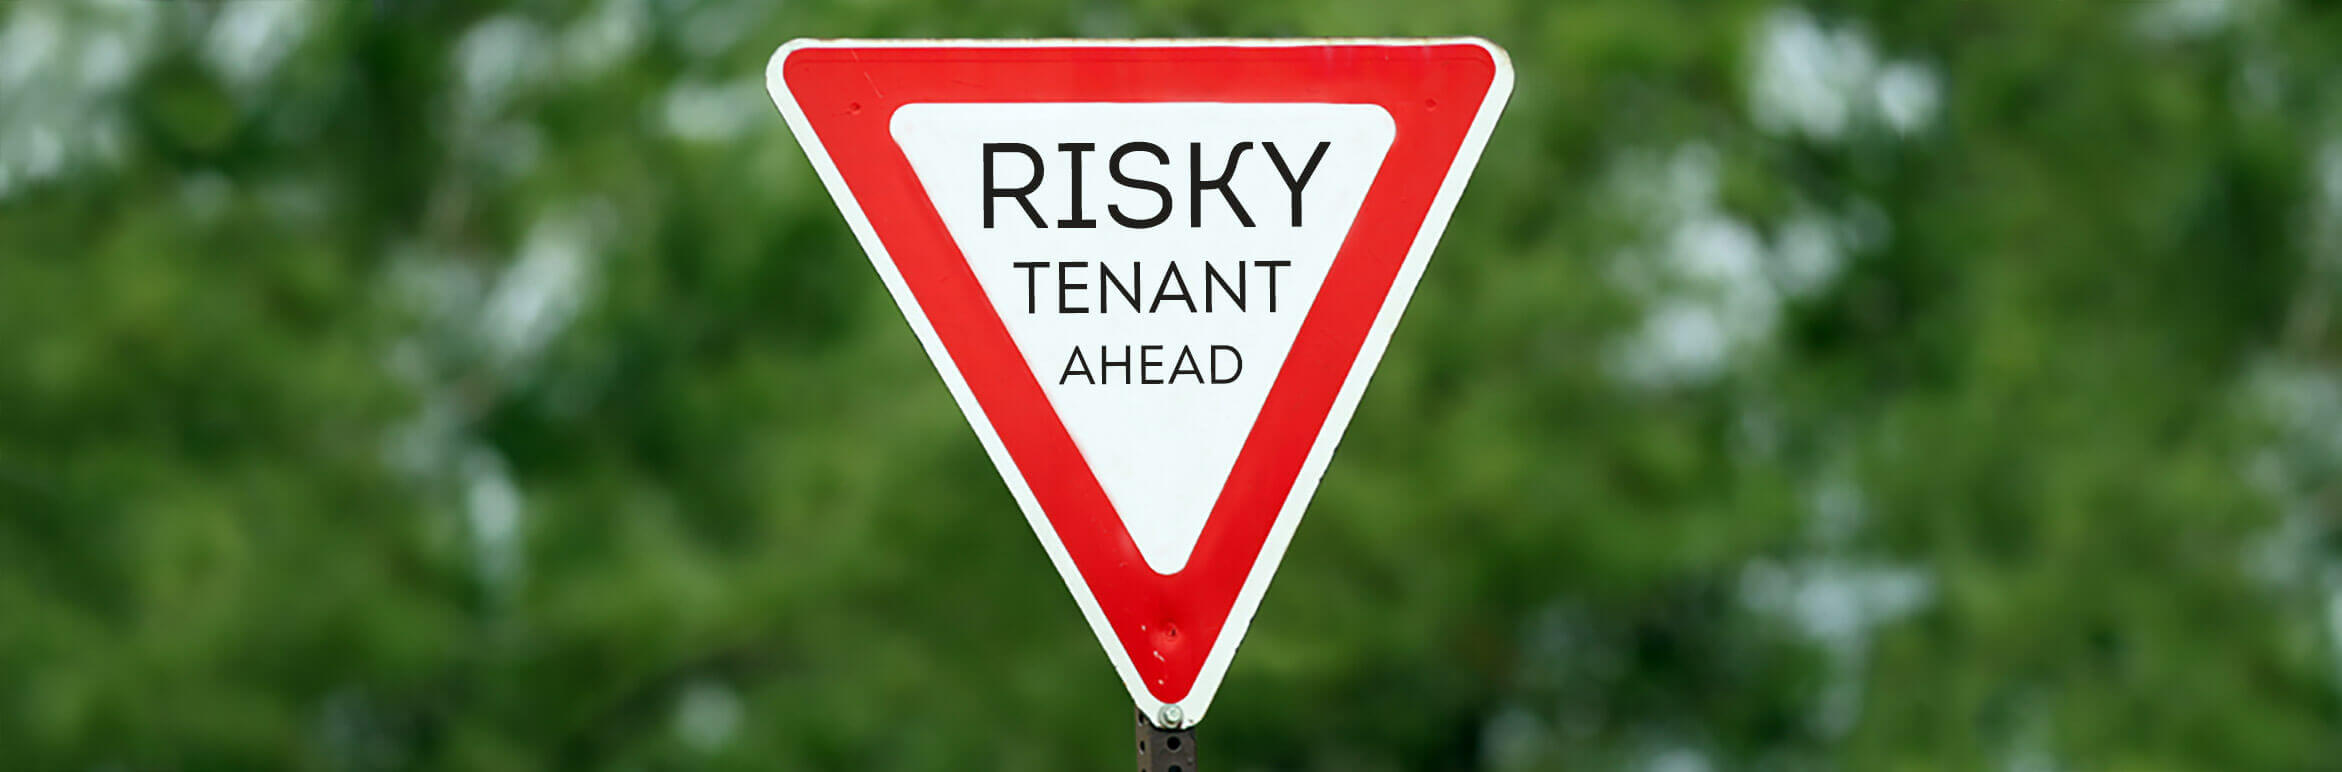 7 tenant screening warning signs that aren t so obvious smartmove